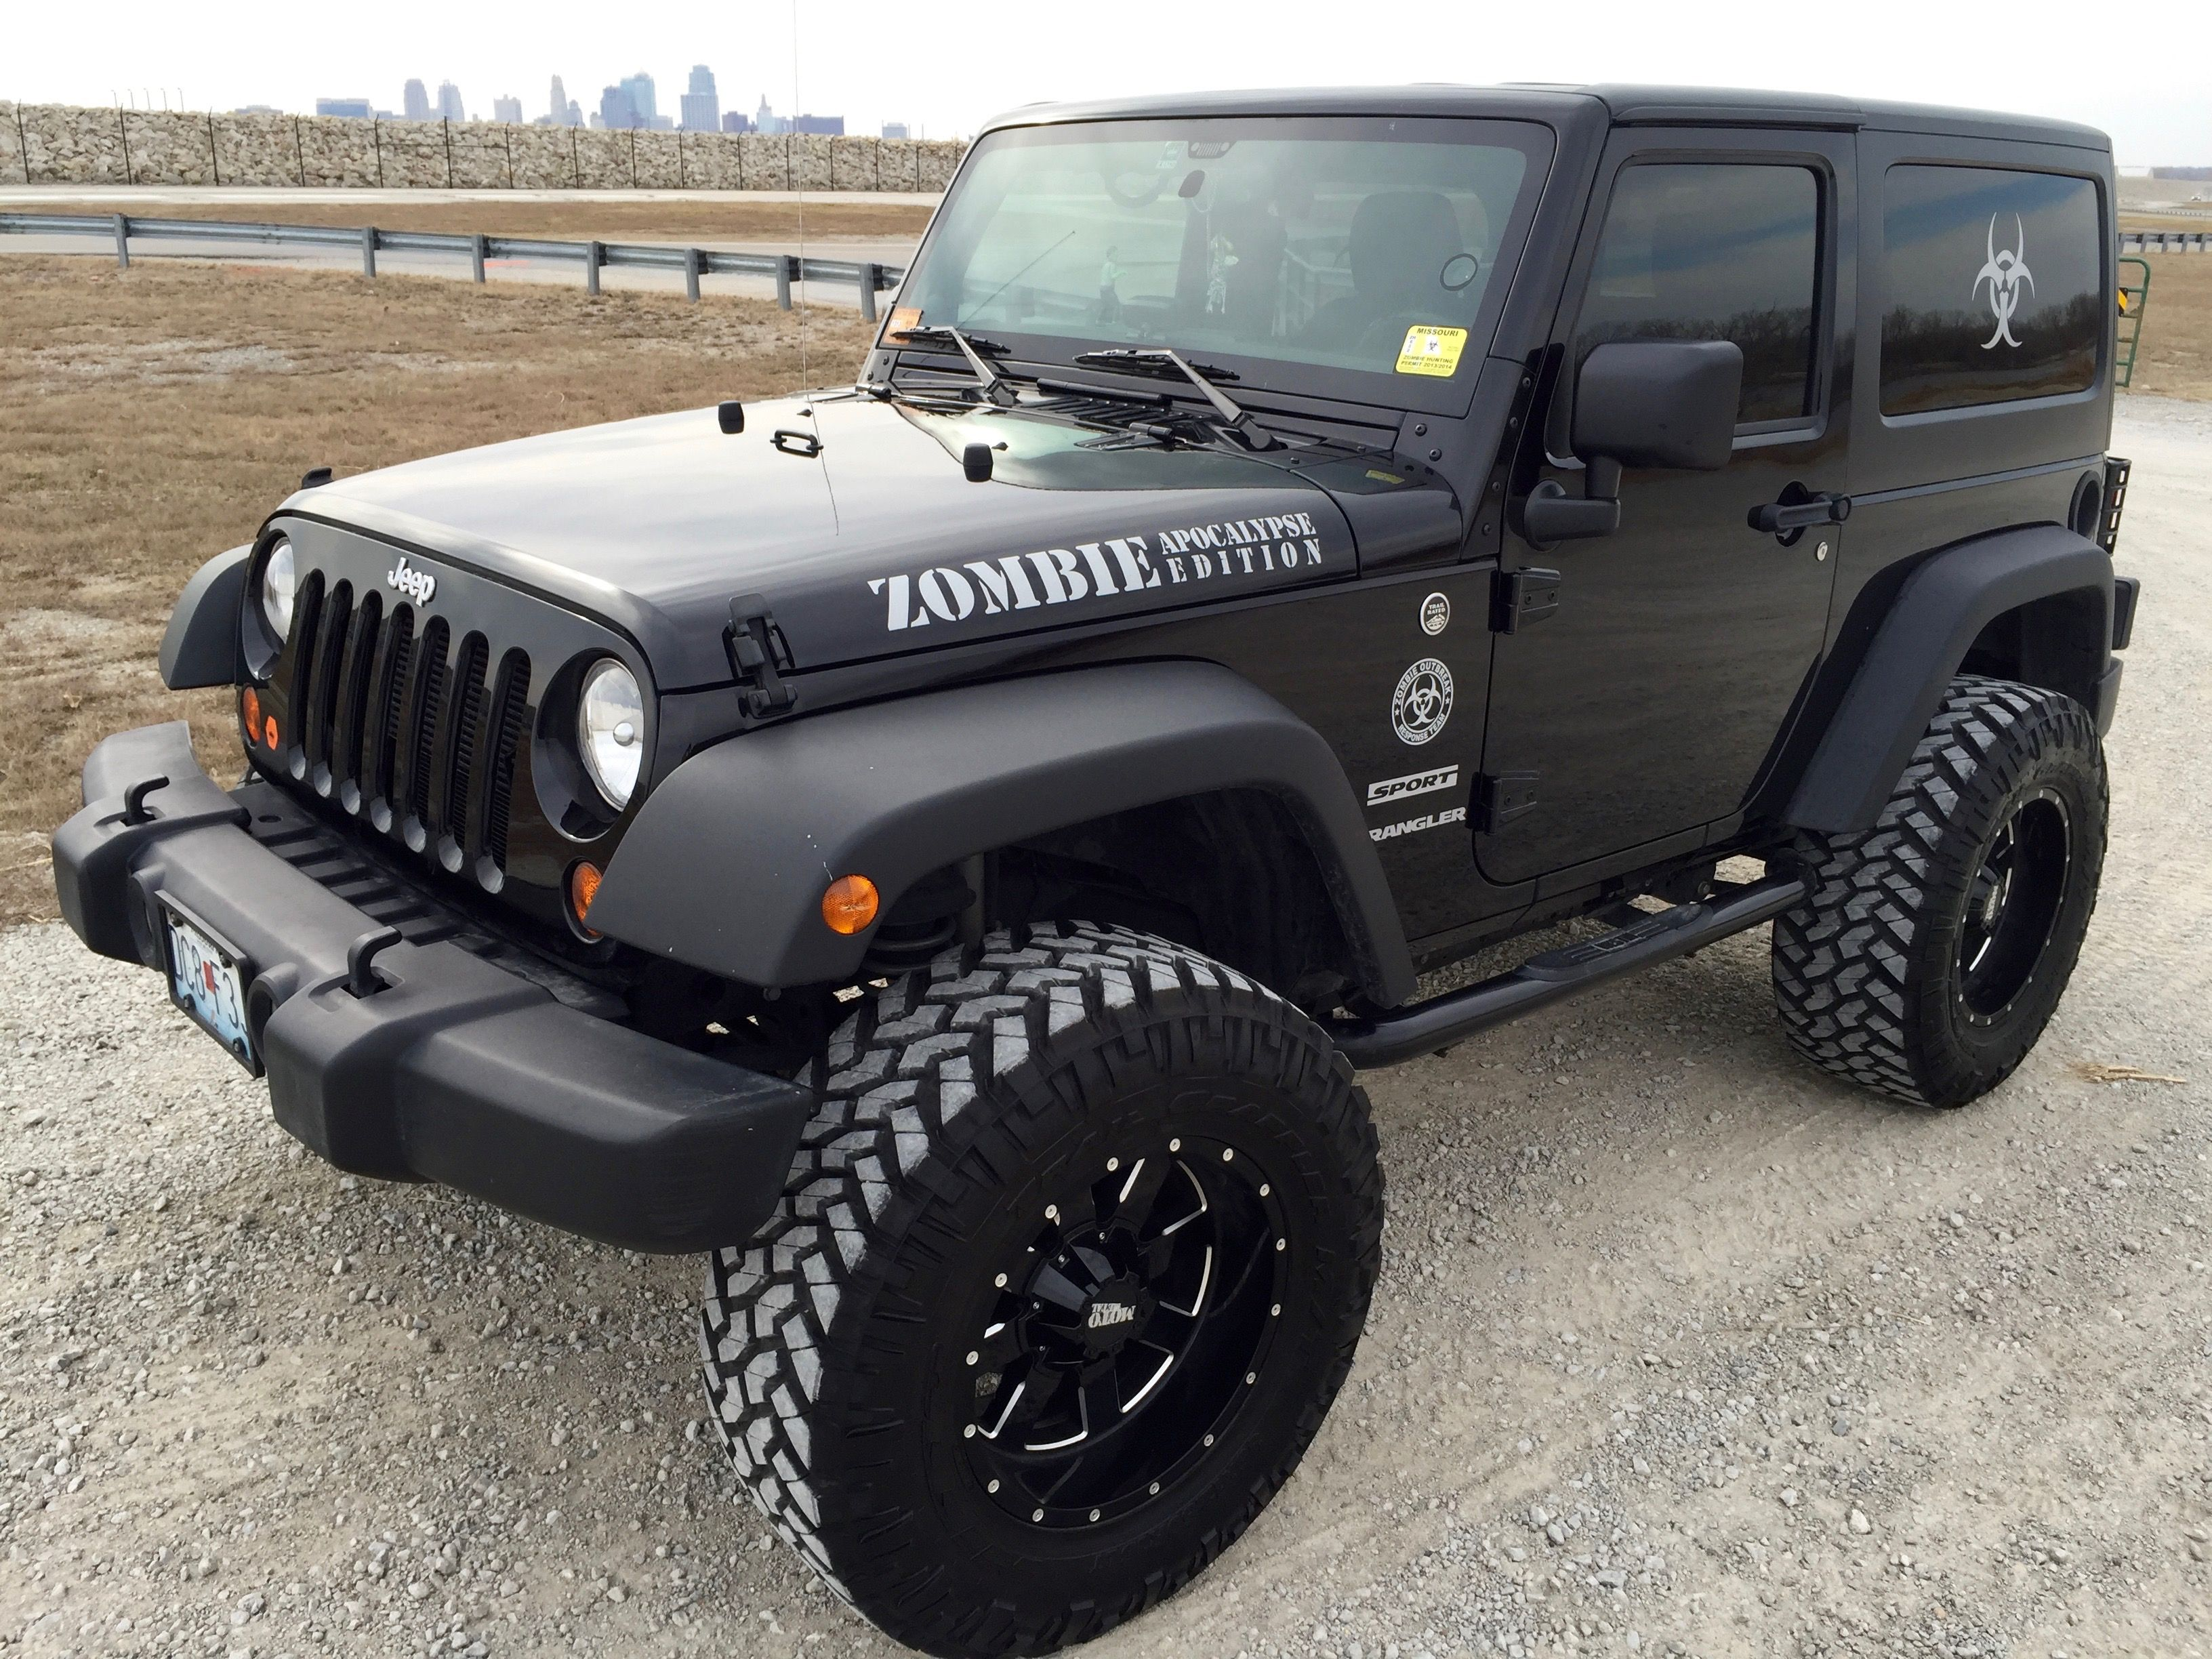 Zombie Apocalypse Jeep with hunting permits (window decals) and no